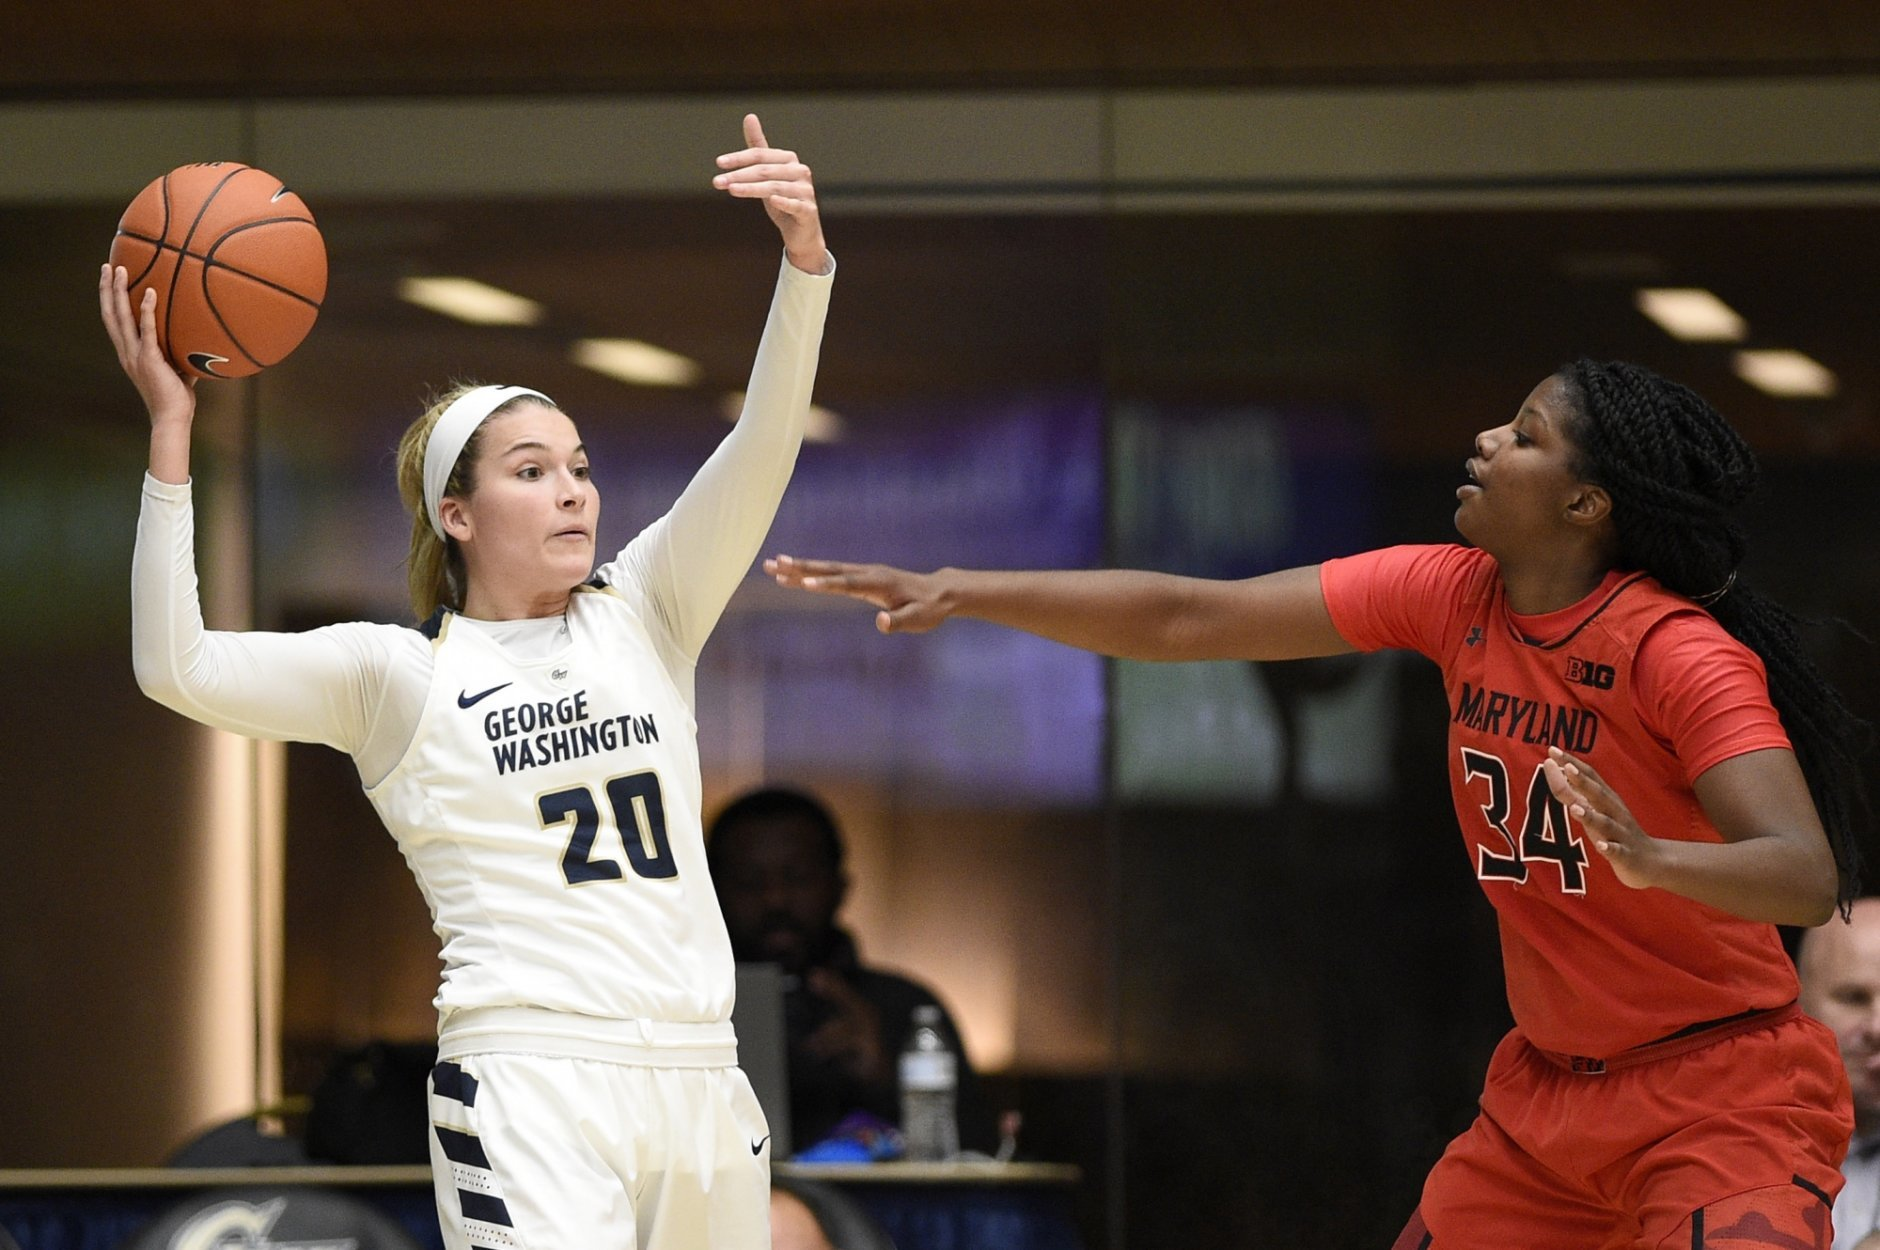 George Washington forward Sarah Overcash (20) holds the ball against Maryland forward Brianna Fraser (34) during the second half of an NCAA college basketball game, Wednesday, Nov. 14, 2018, in Washington. Maryland won 69-30. (AP Photo/Nick Wass)